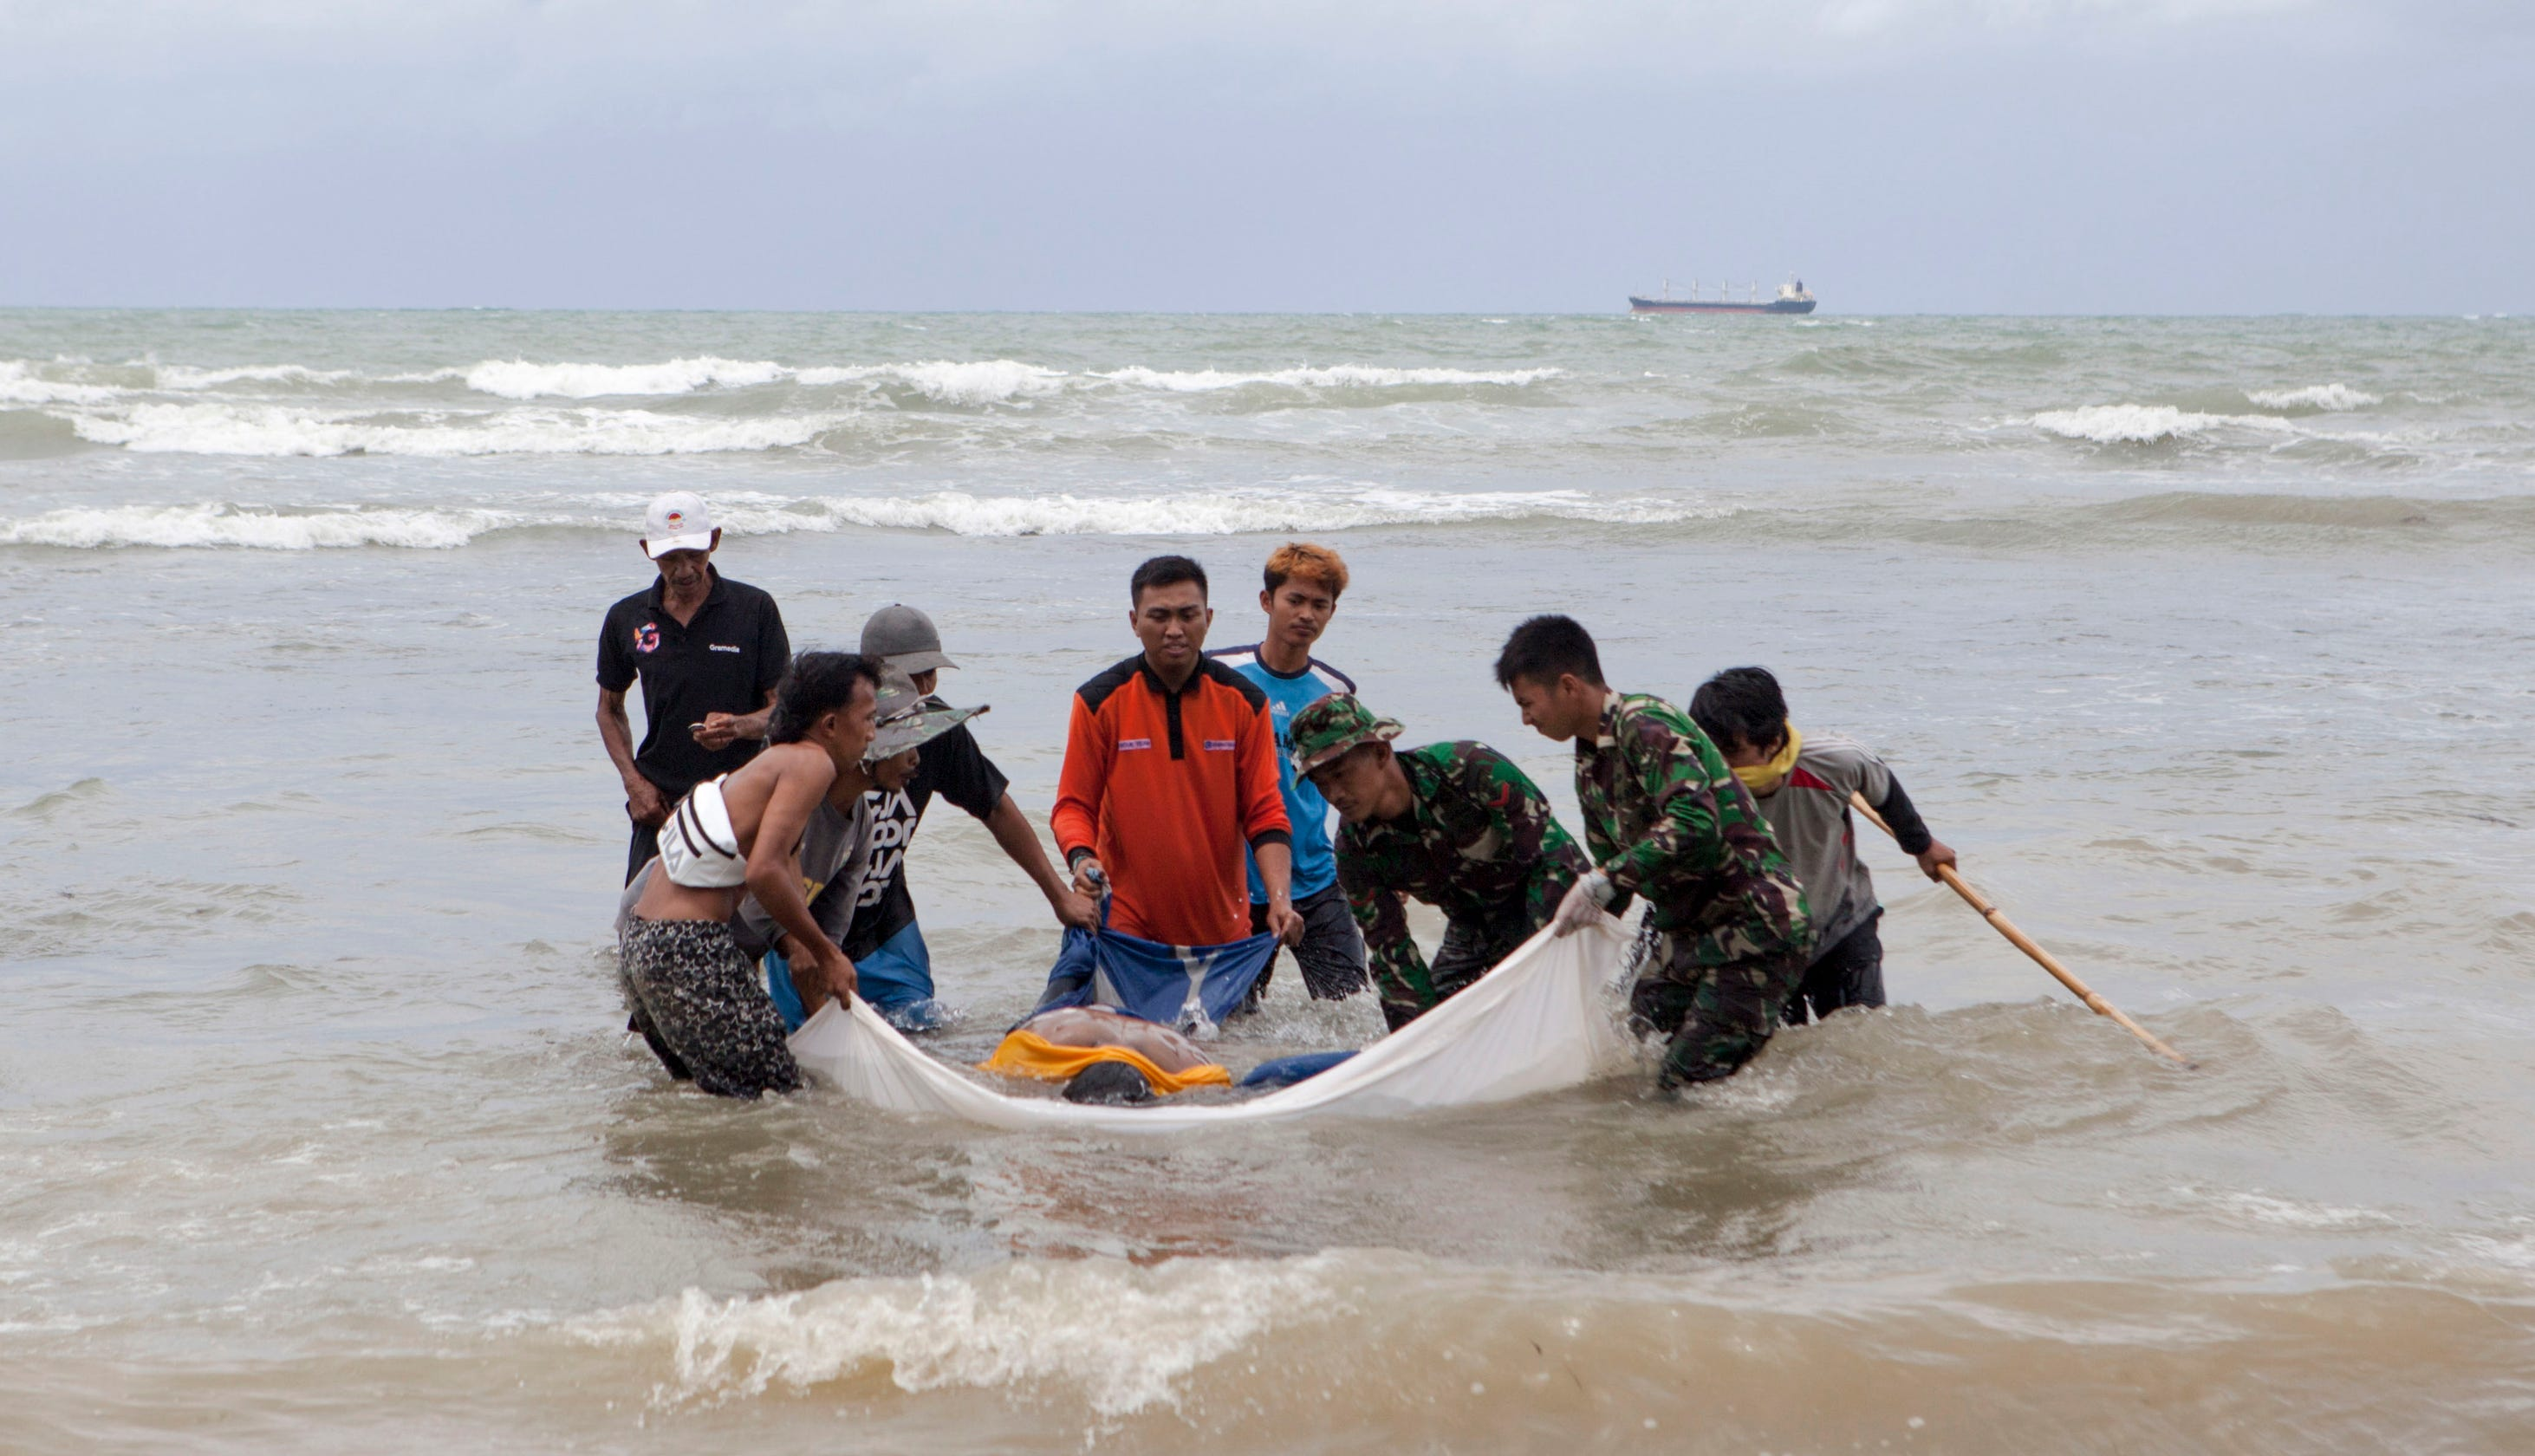 QnA VBage Crippled early warning system meant that Indonesians had no warning of deadly tsunami